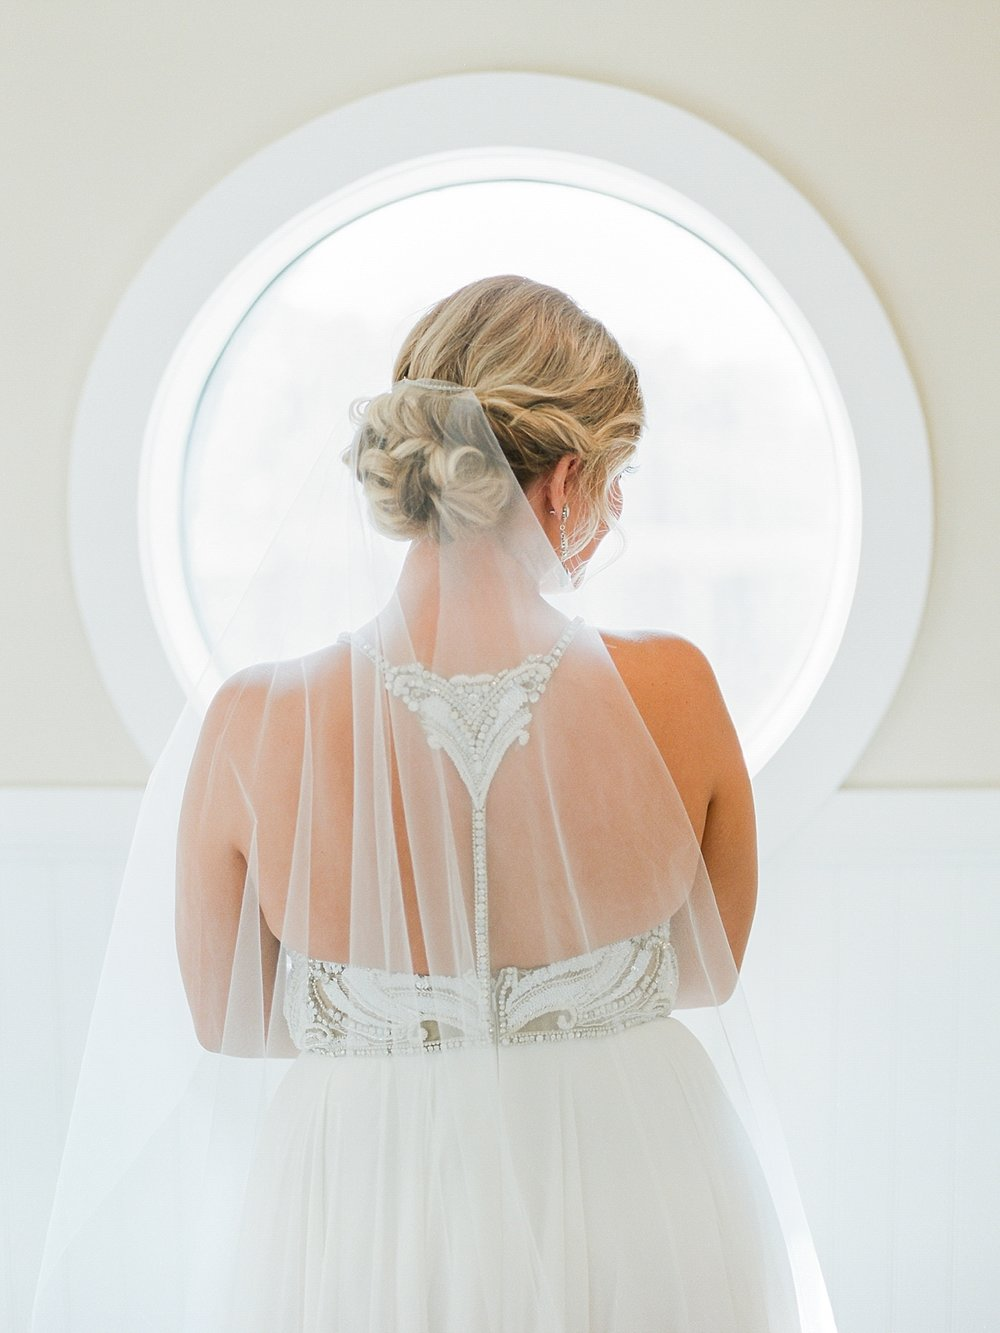 Romantic Bridal Hairstyle with a Veil and Dramatic Back Wedding Dress